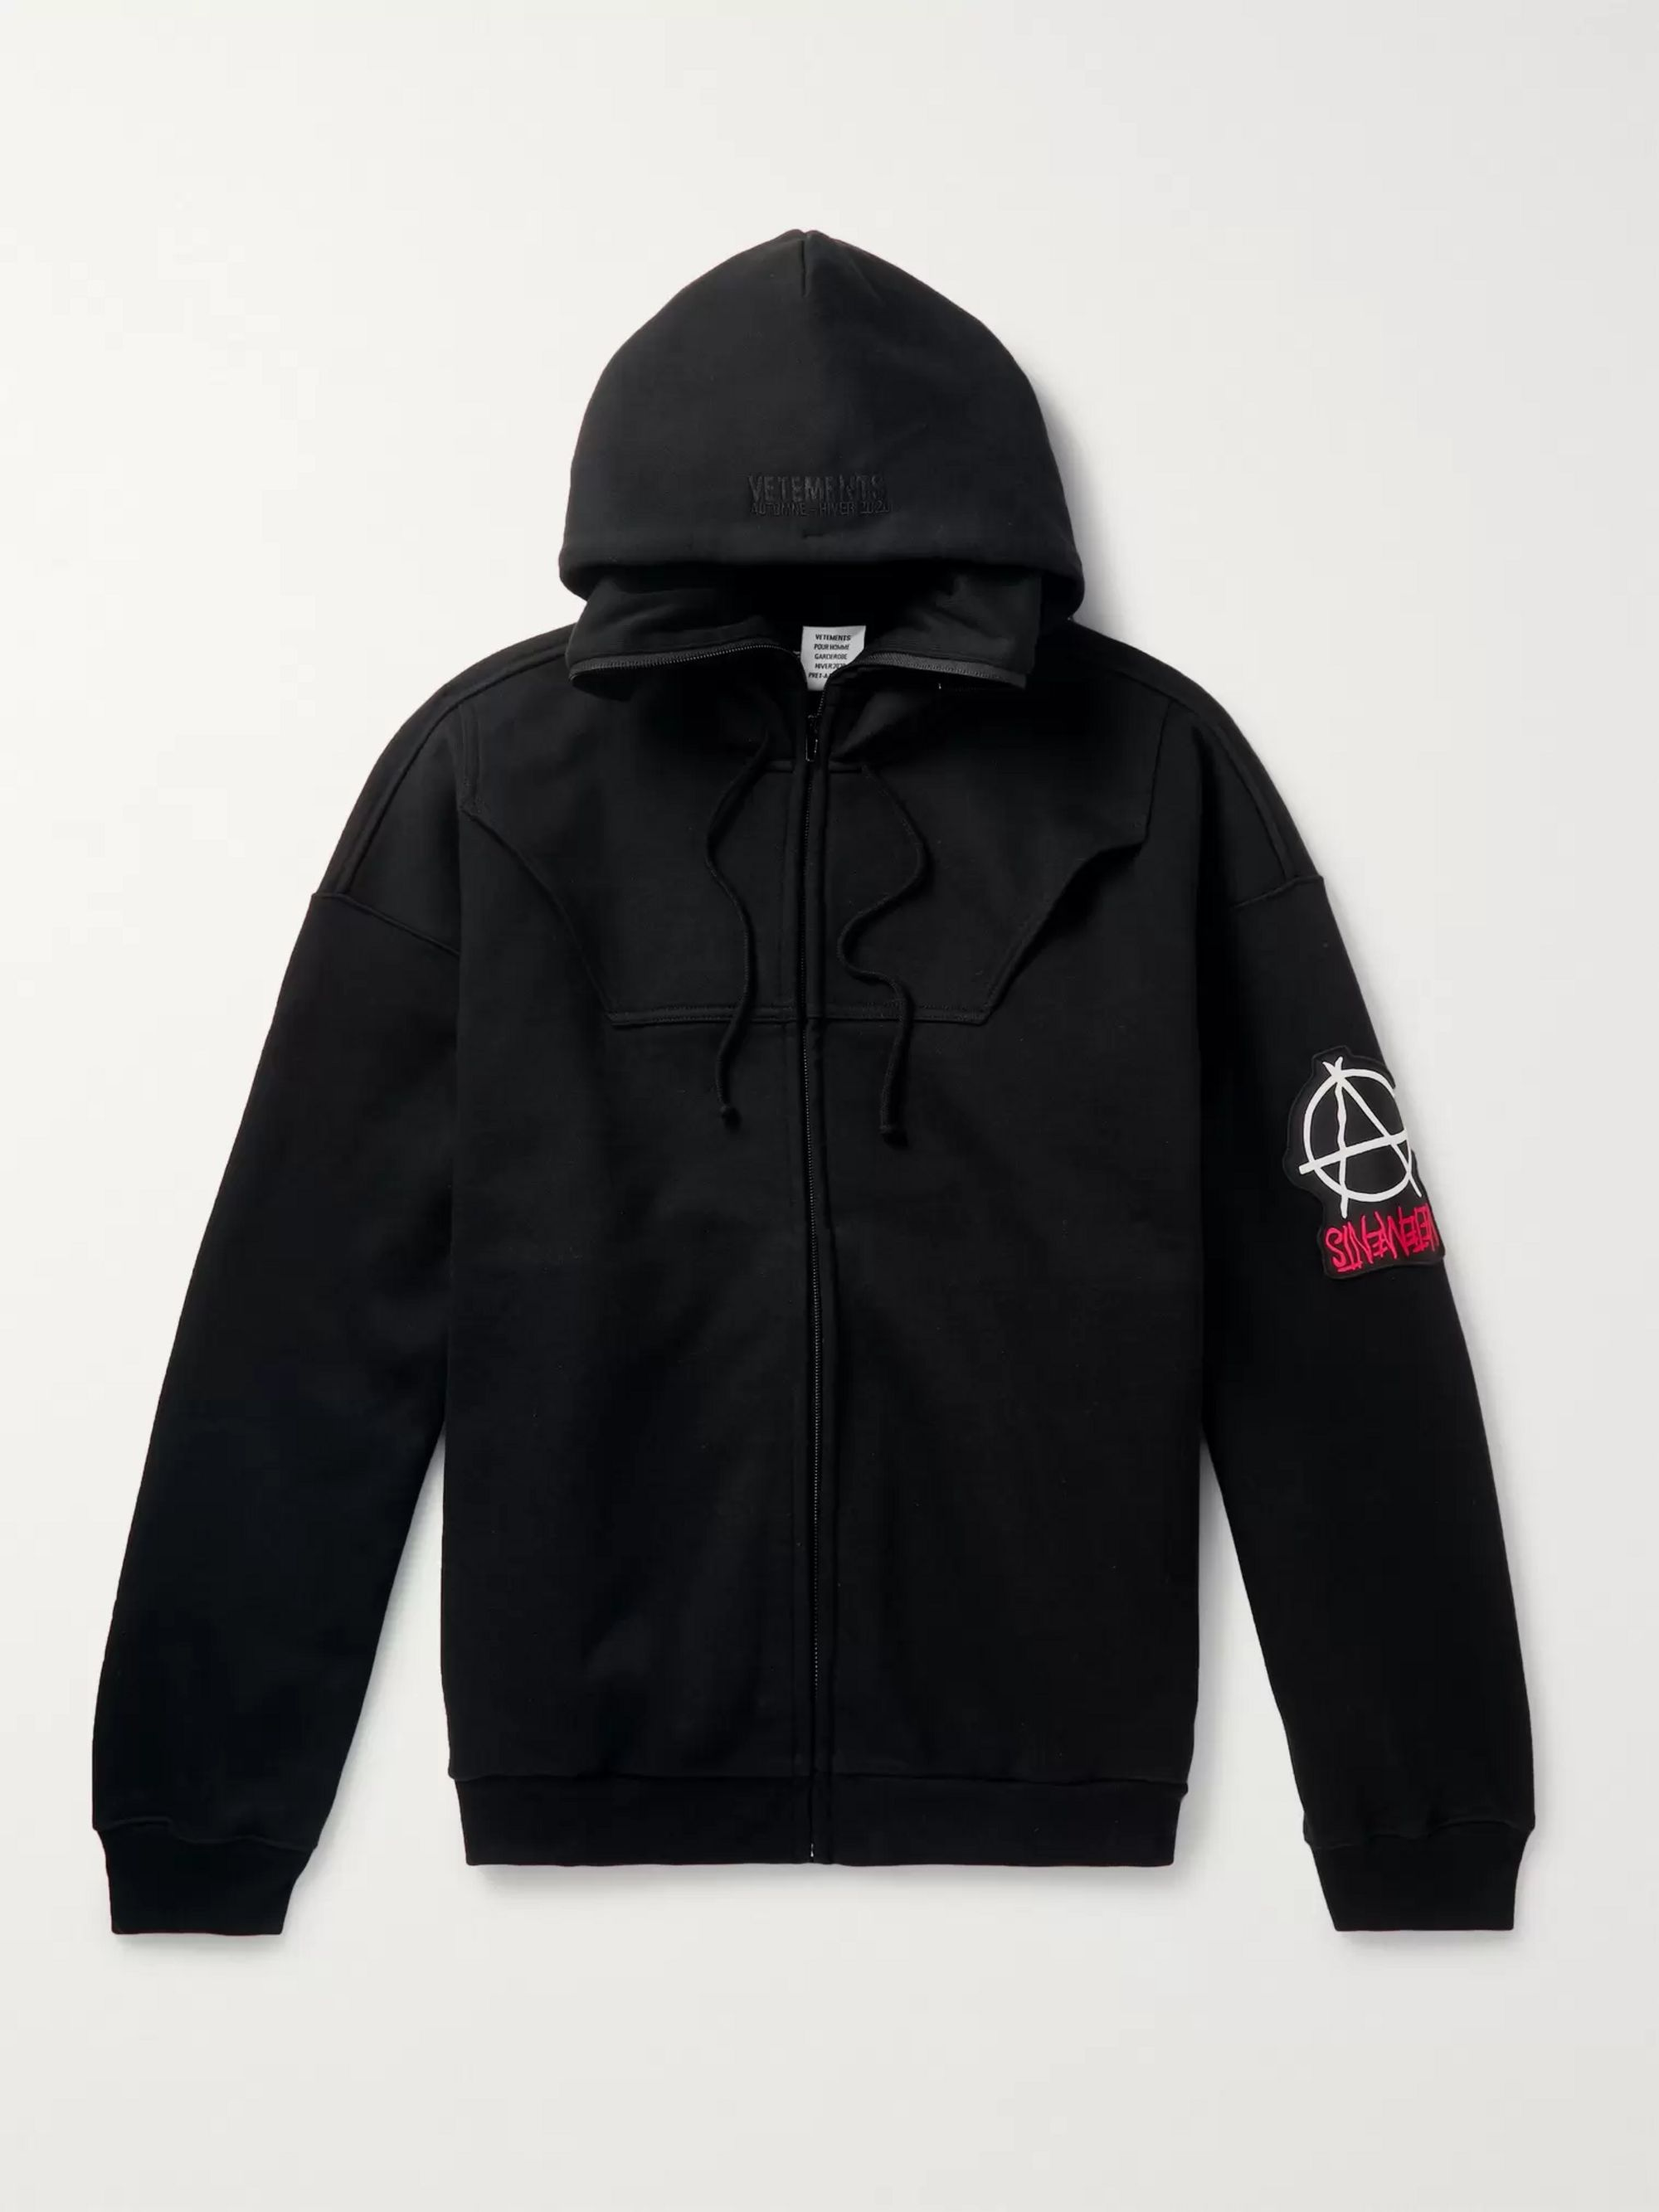 Logo Appliquéd Fleece Back Cotton Jersey Zip Up Hoodie by Vetements